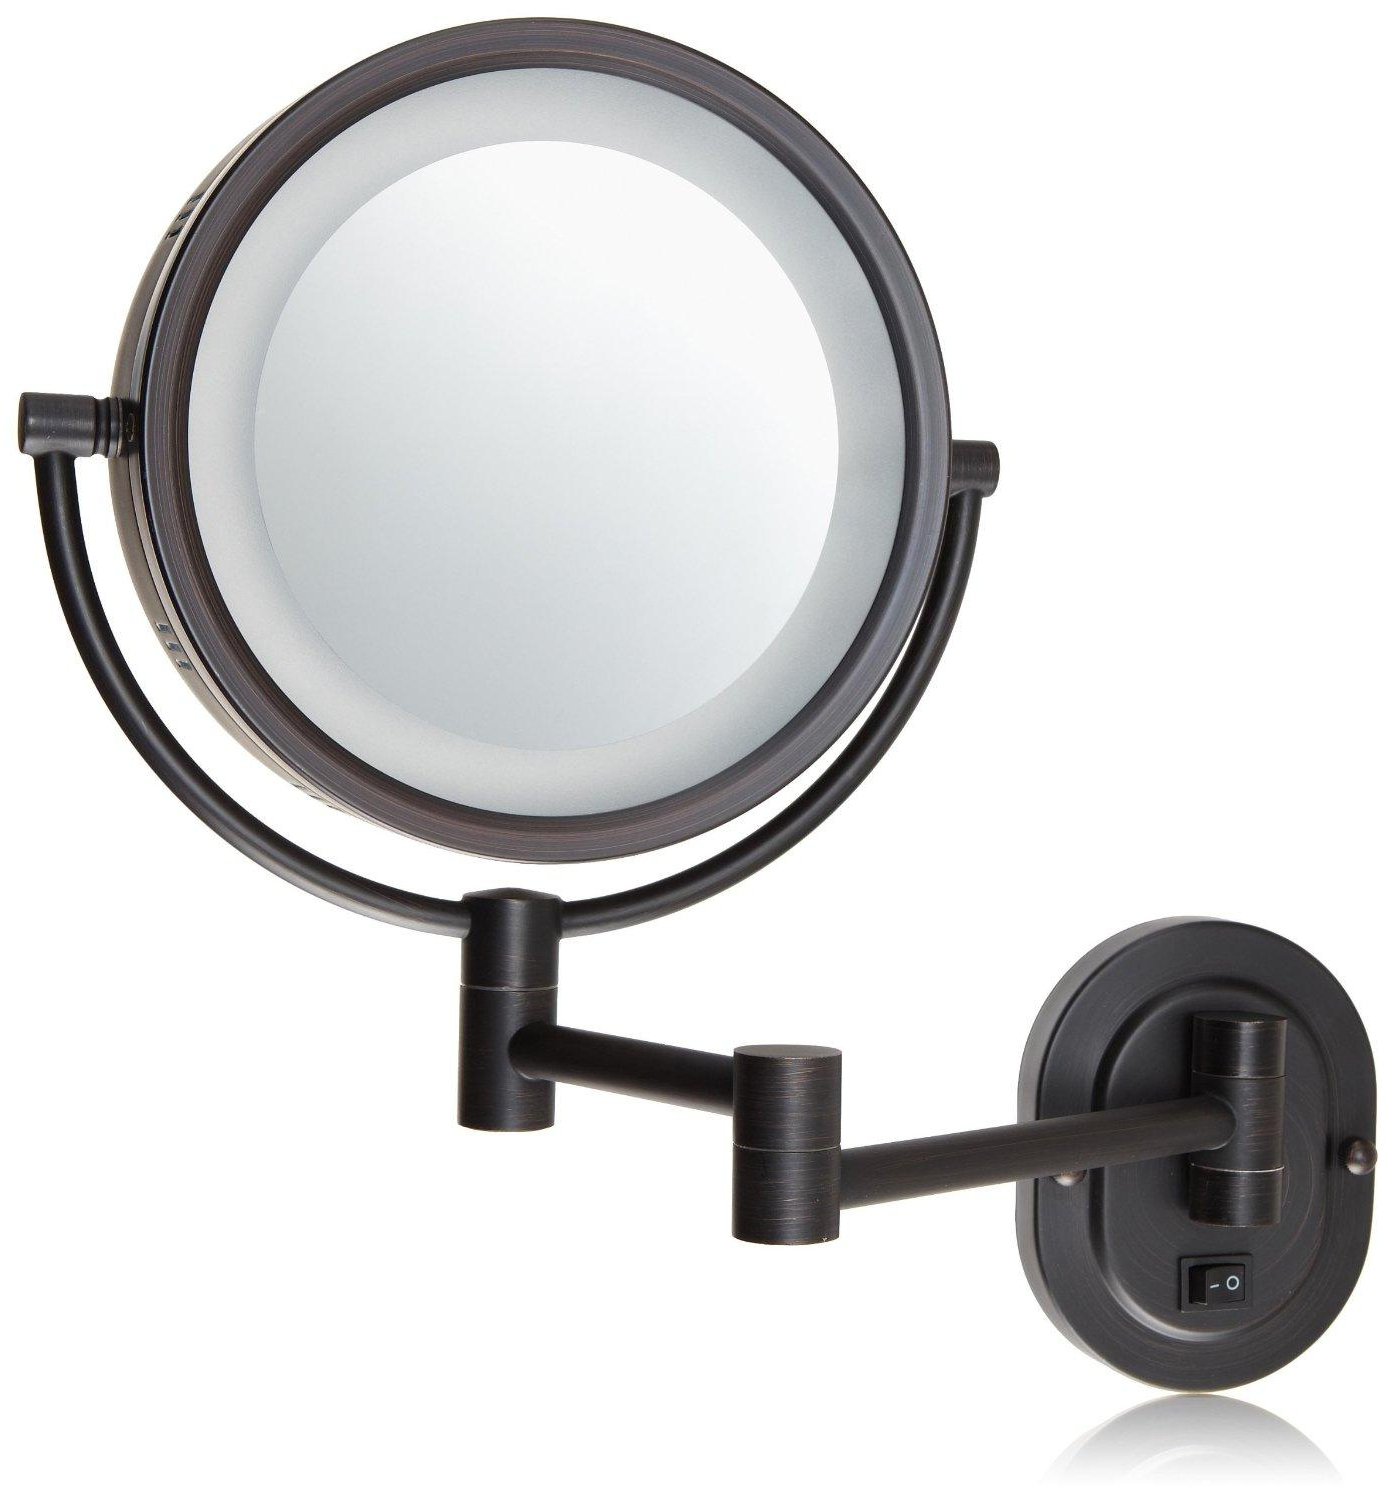 Extension Arm Wall Mirrors Pertaining To Most Up To Date Jerdon Hl65Bzd 8 Inch Lighted Direct Wire Wall Mount Makeup Mirror With 5X  Magnification, Bronze Finish (View 12 of 20)